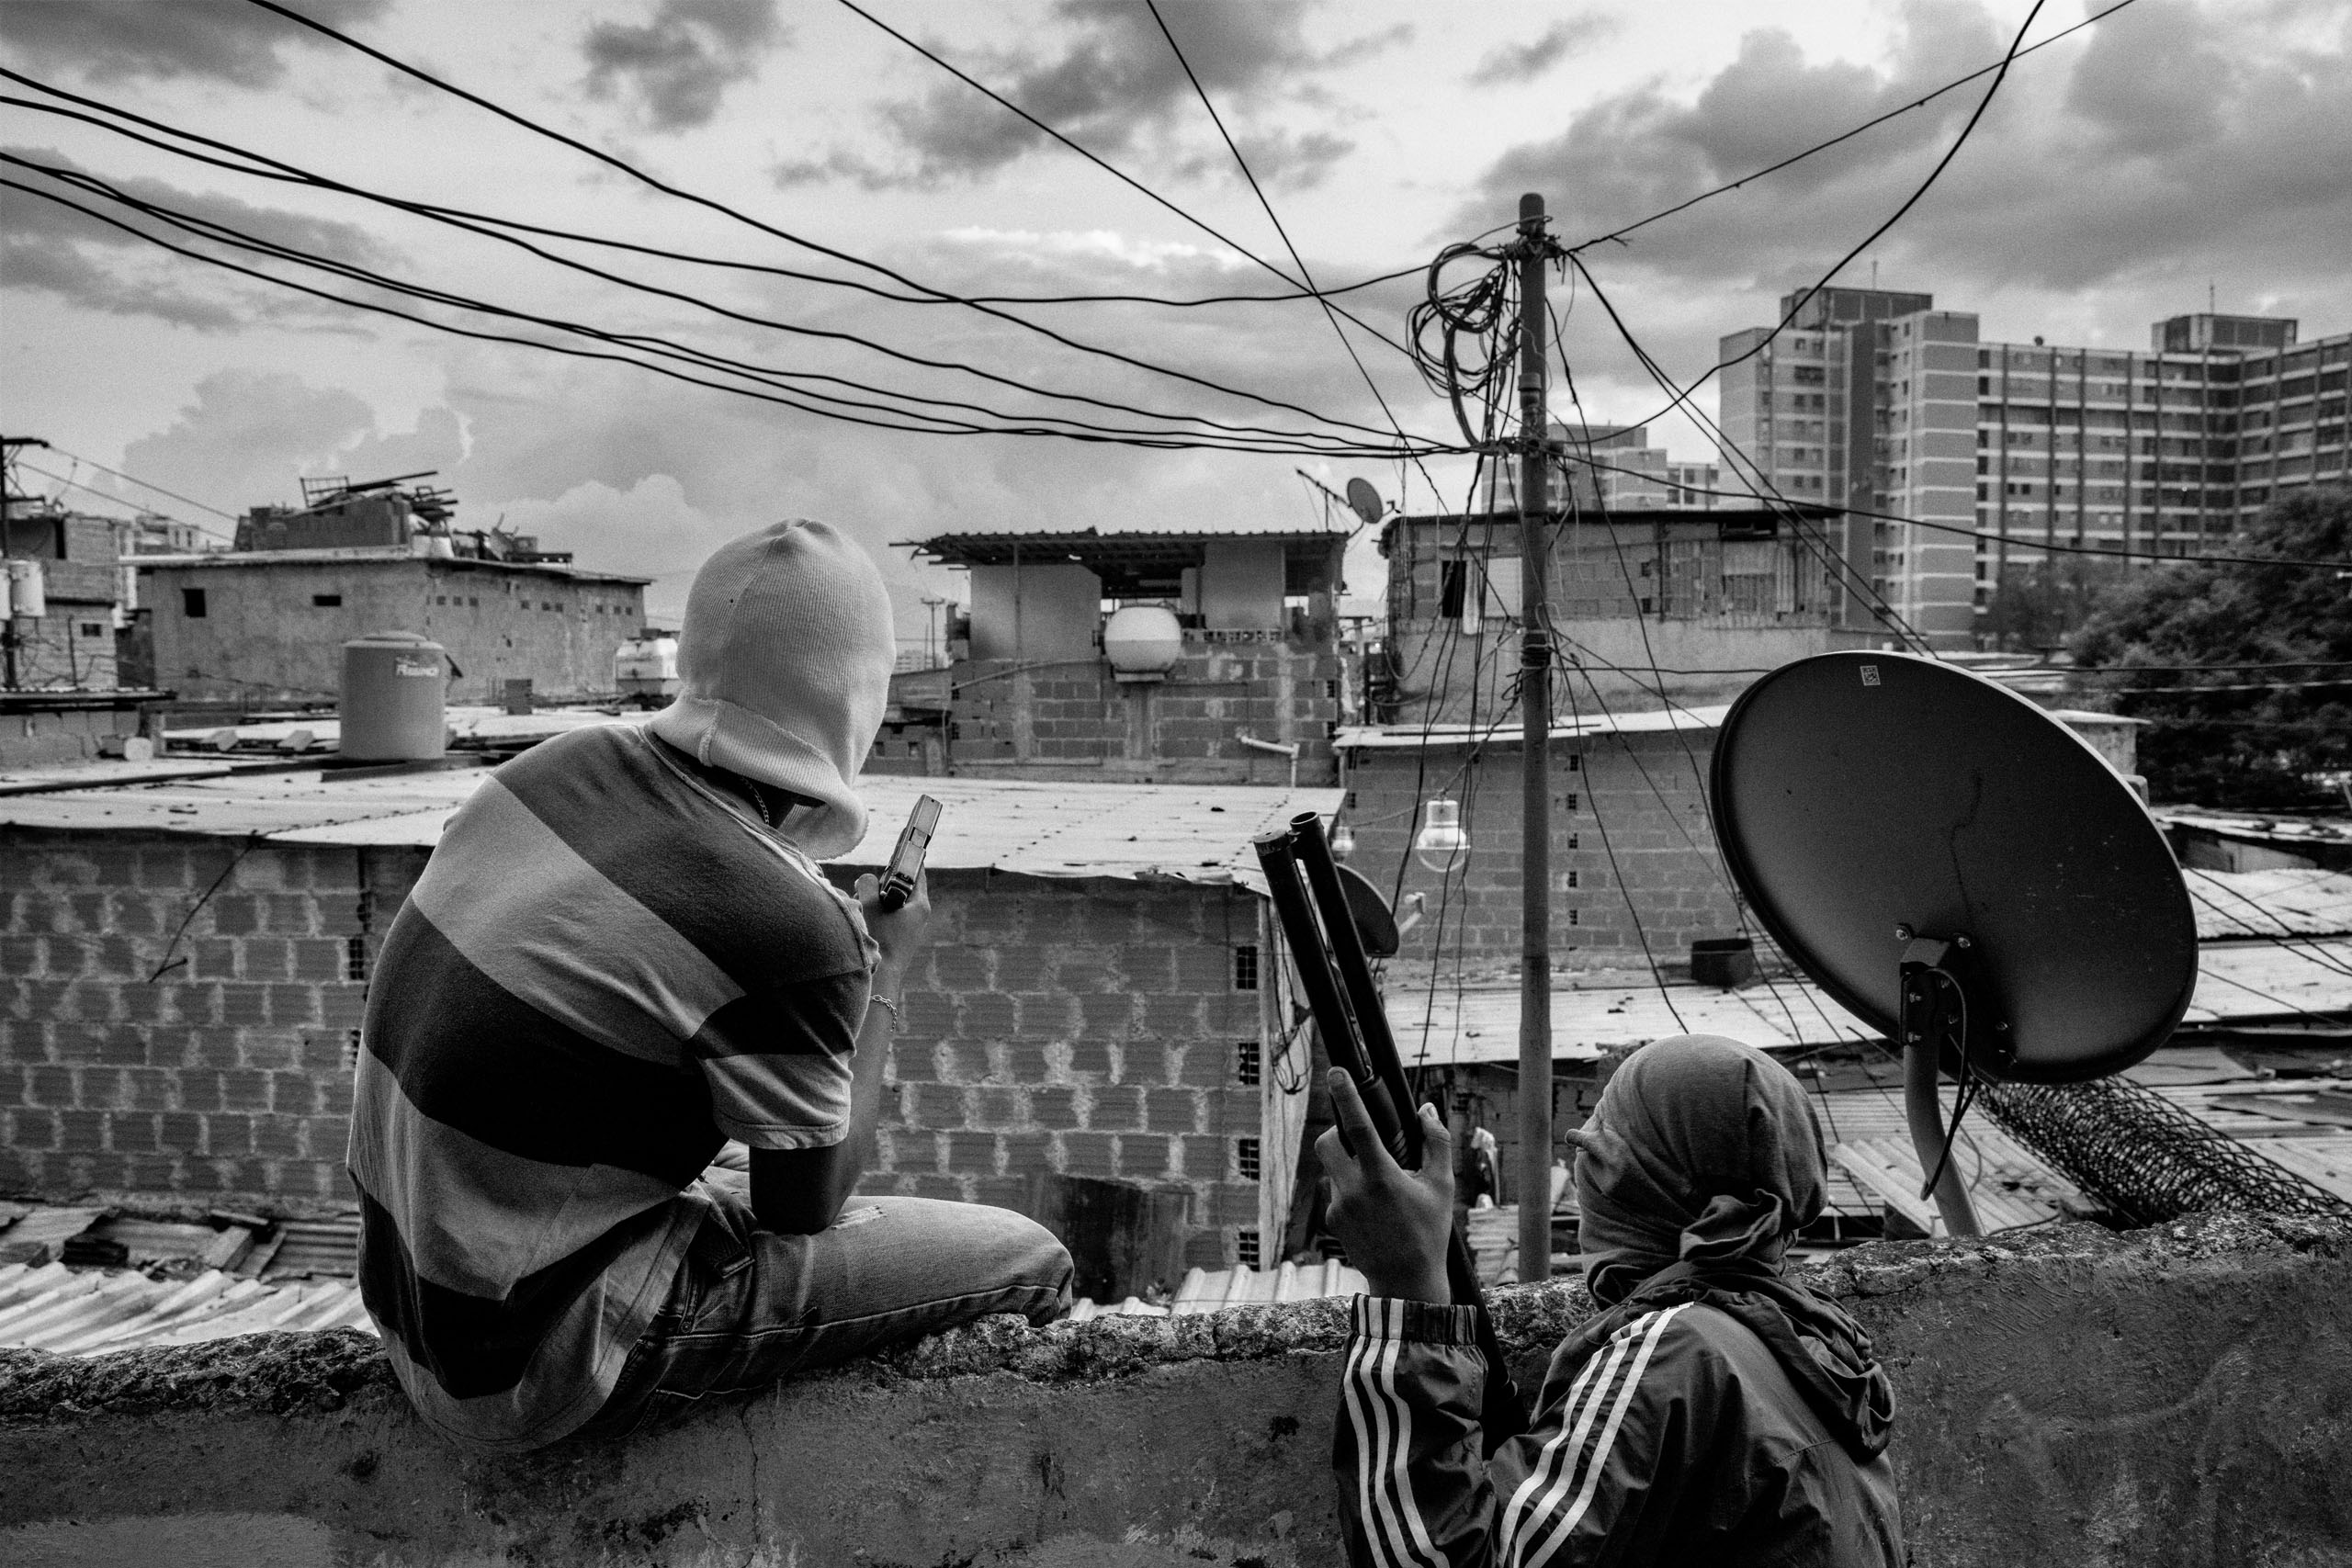 Members of a criminal gang lookout over their neighborhood in Caracas. Their faces are covered to avoid being identified by police, Caracas, Sept.  2015